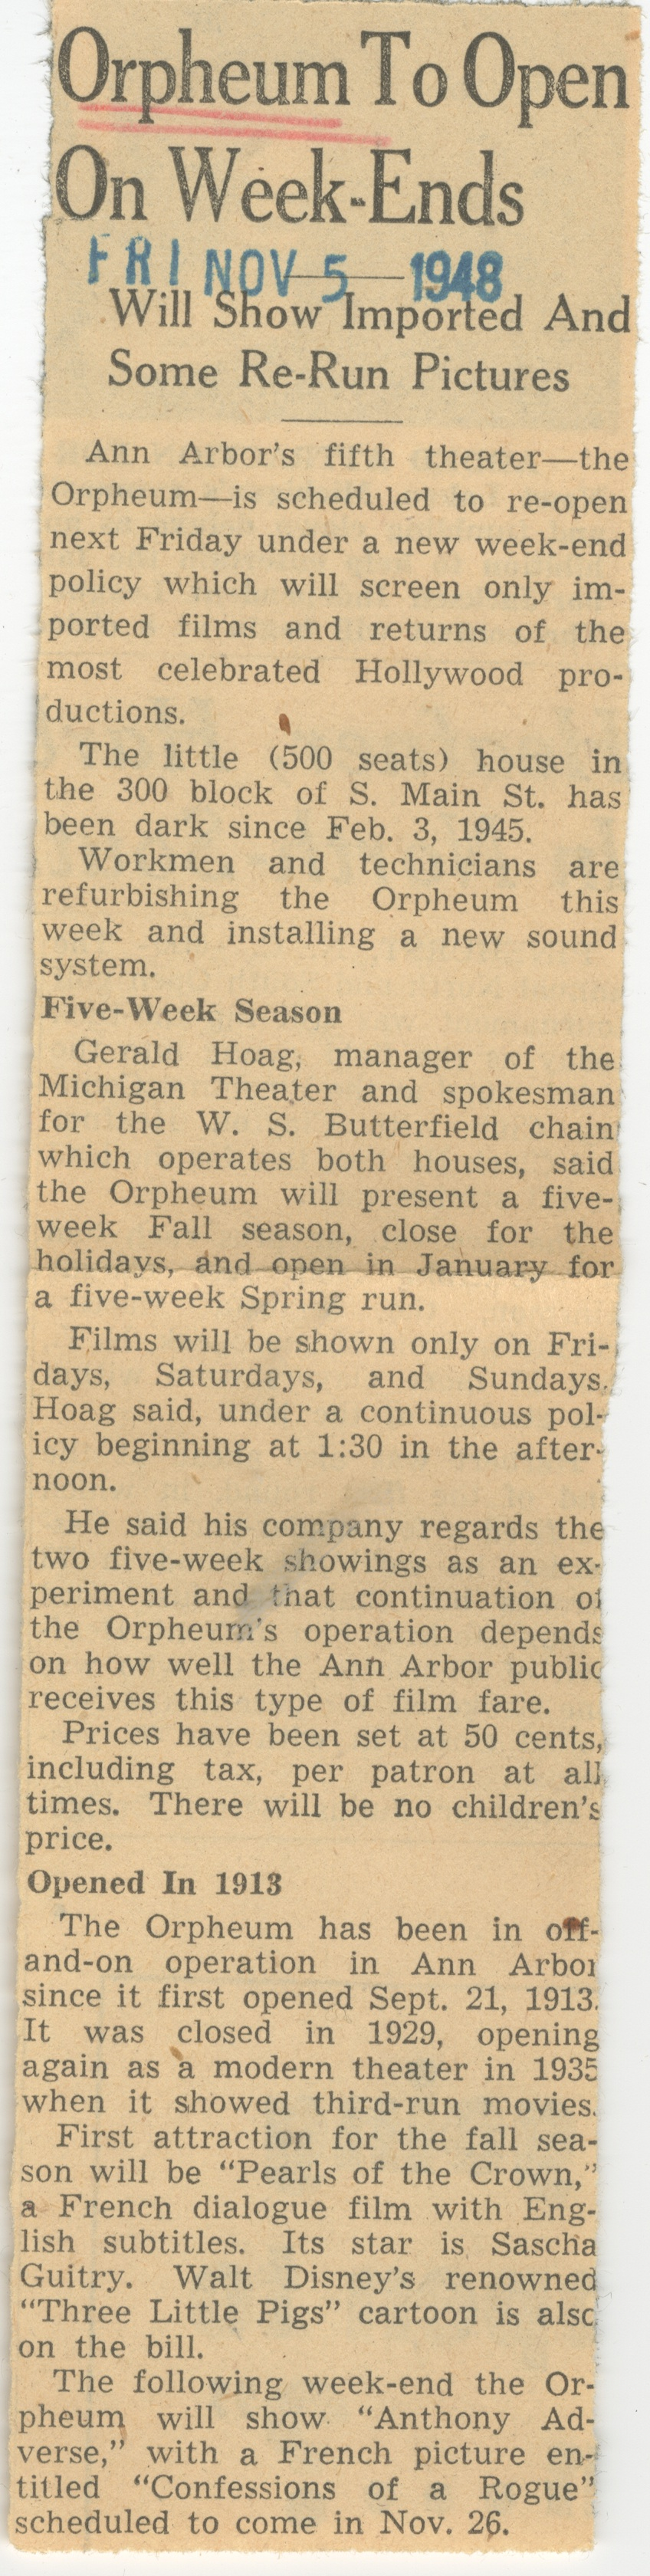 Orpheum To Open On Week-Ends image